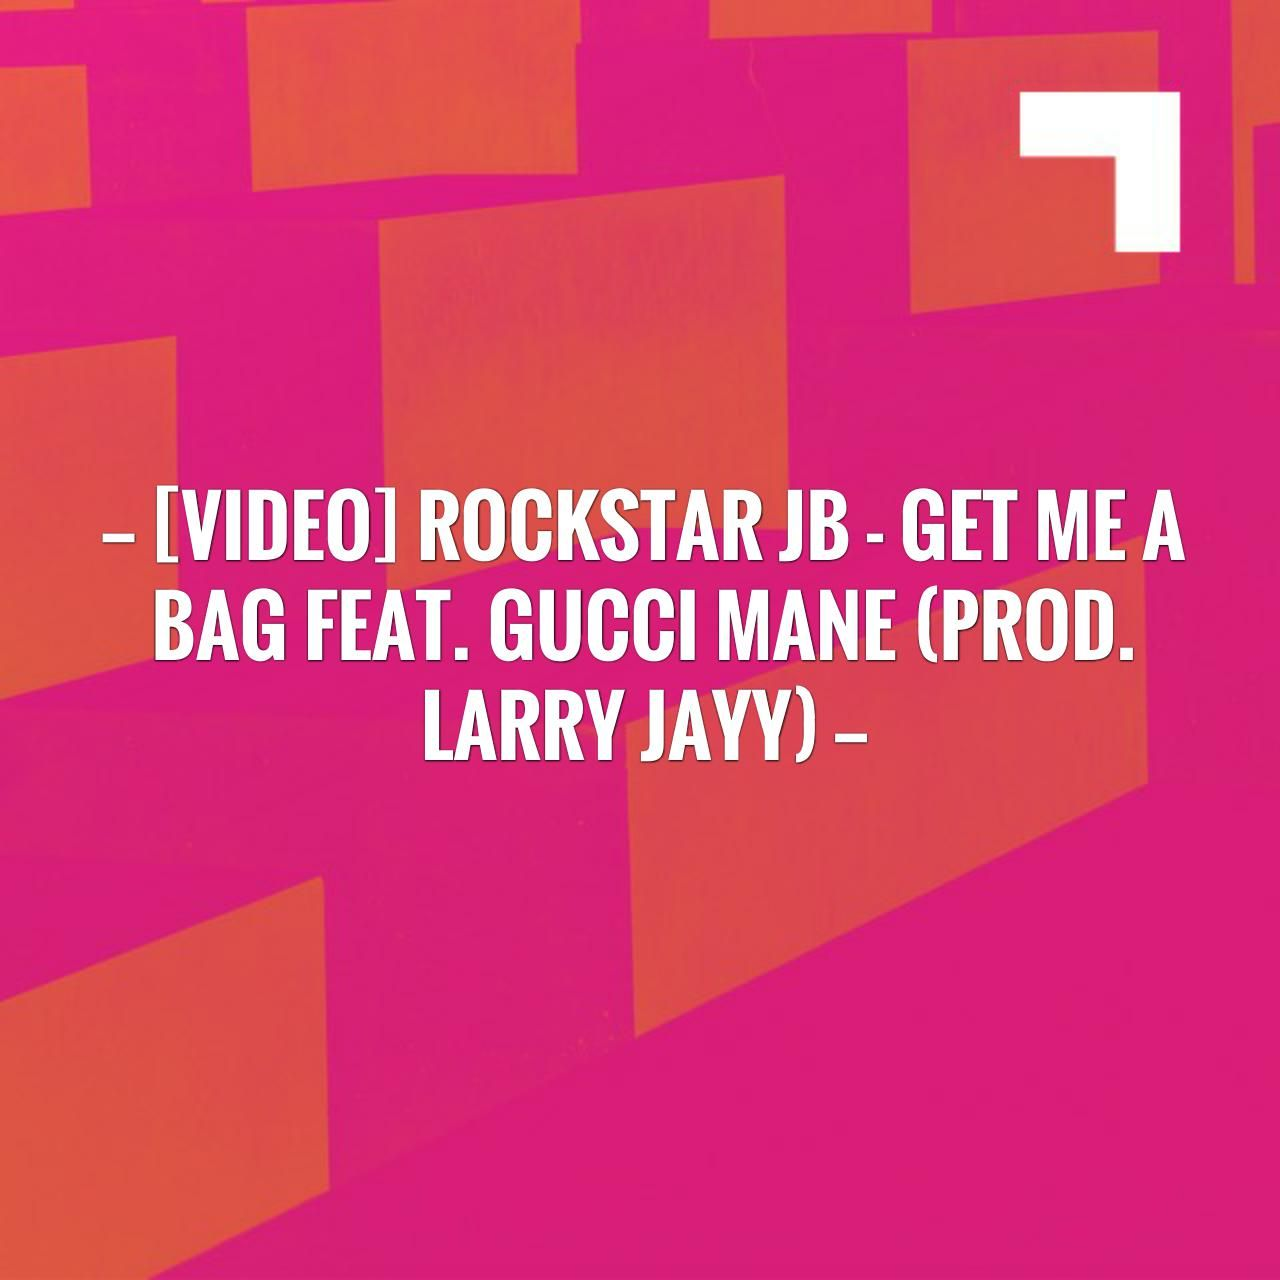 Go ahead and give this a read 🙂 [Video] Rockstar JB Get